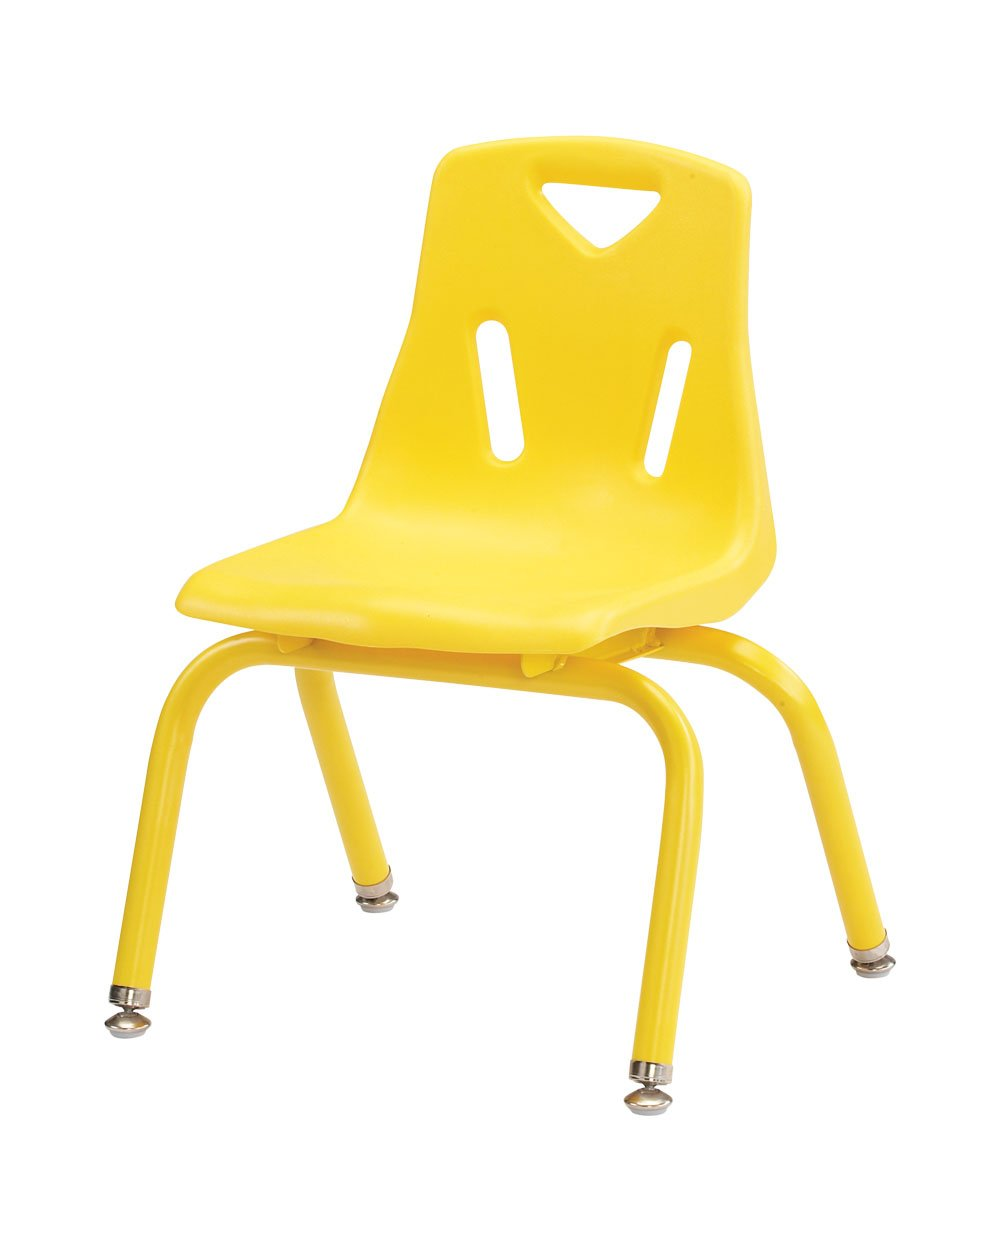 Berries Plastic Chair (Set of 6) Leg Finish: Powder Coated, Color: Yellow, Size: 8''